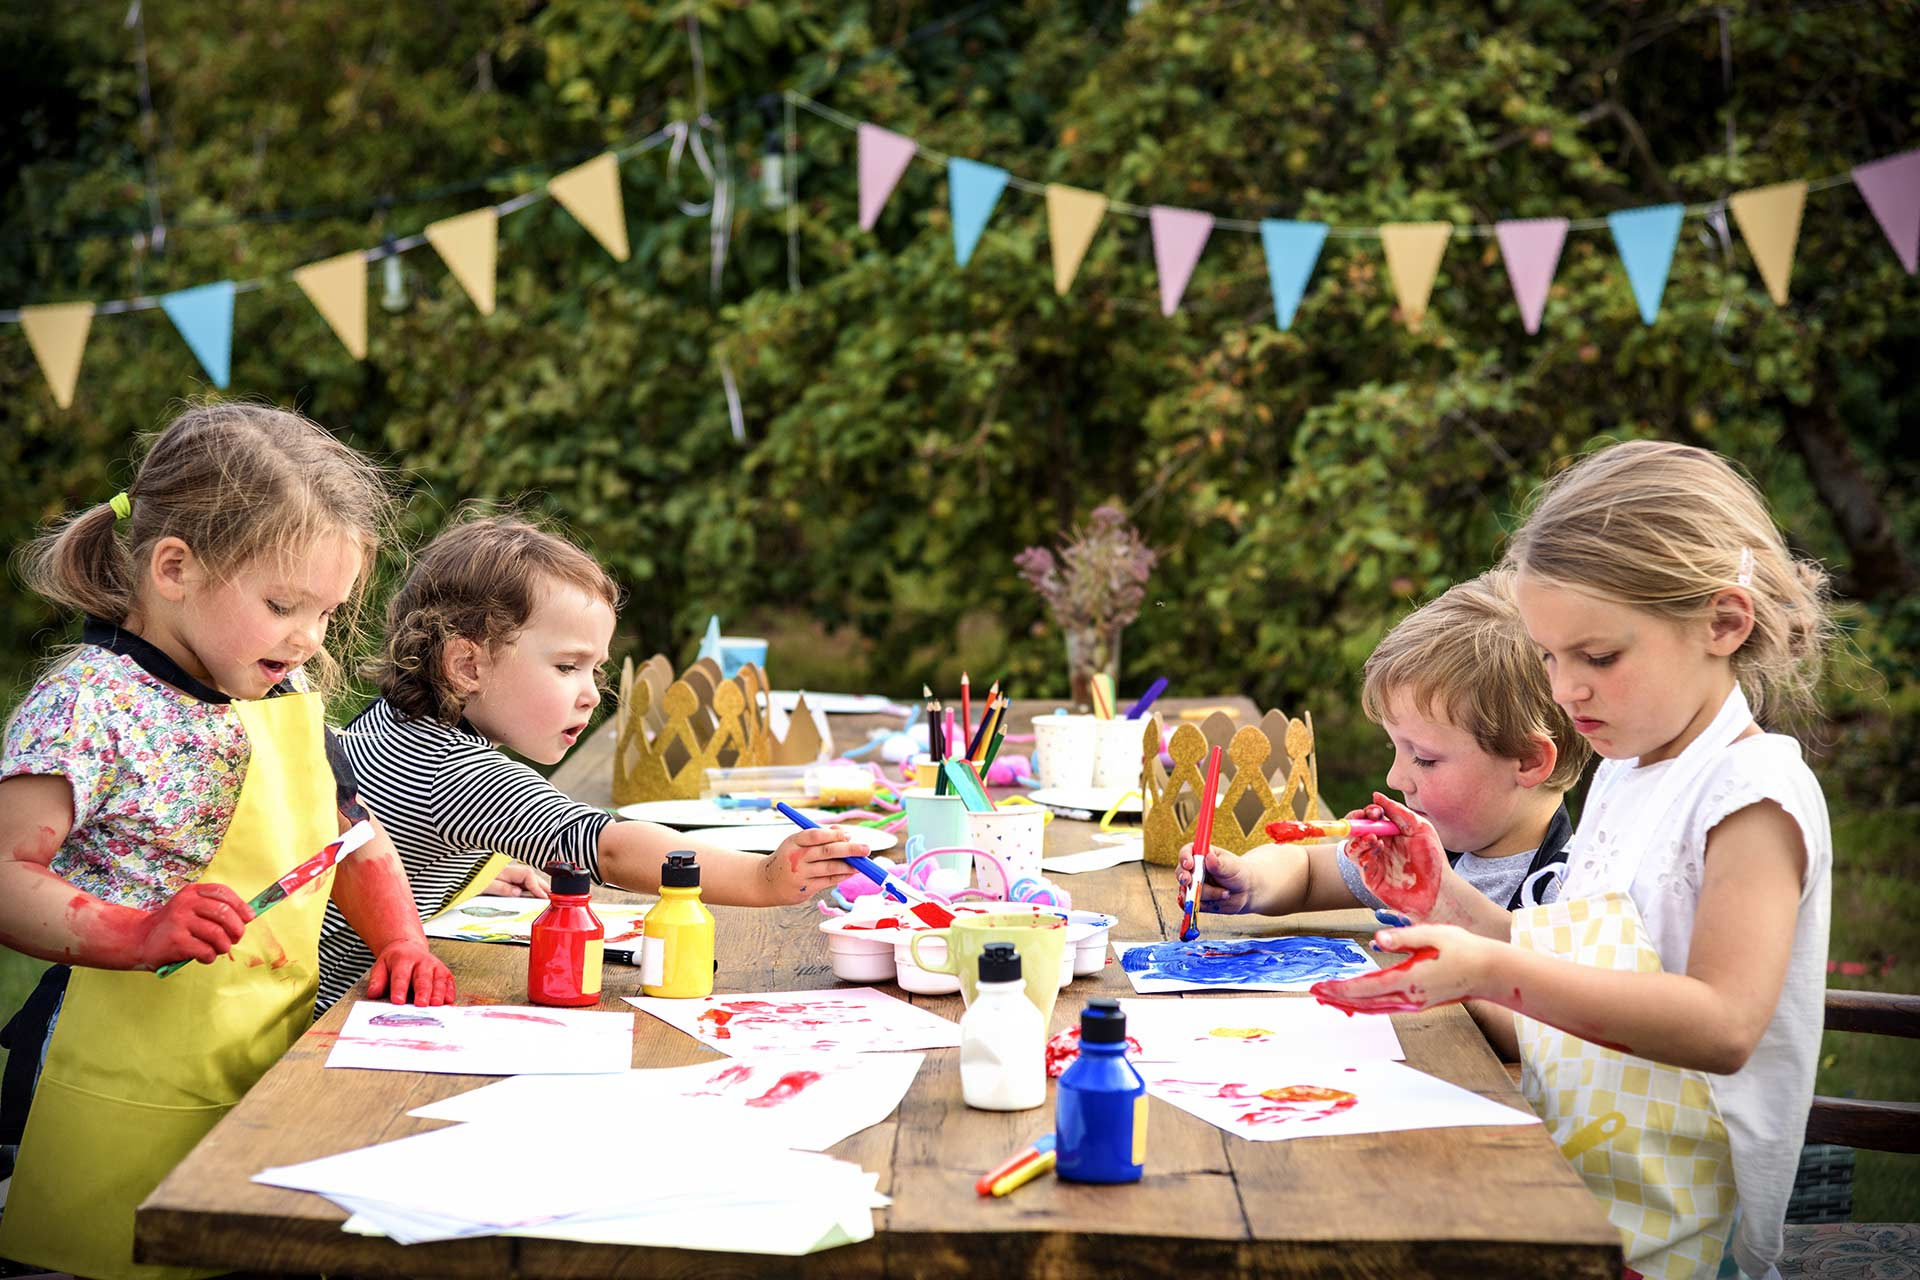 kids painting outdoors at a party